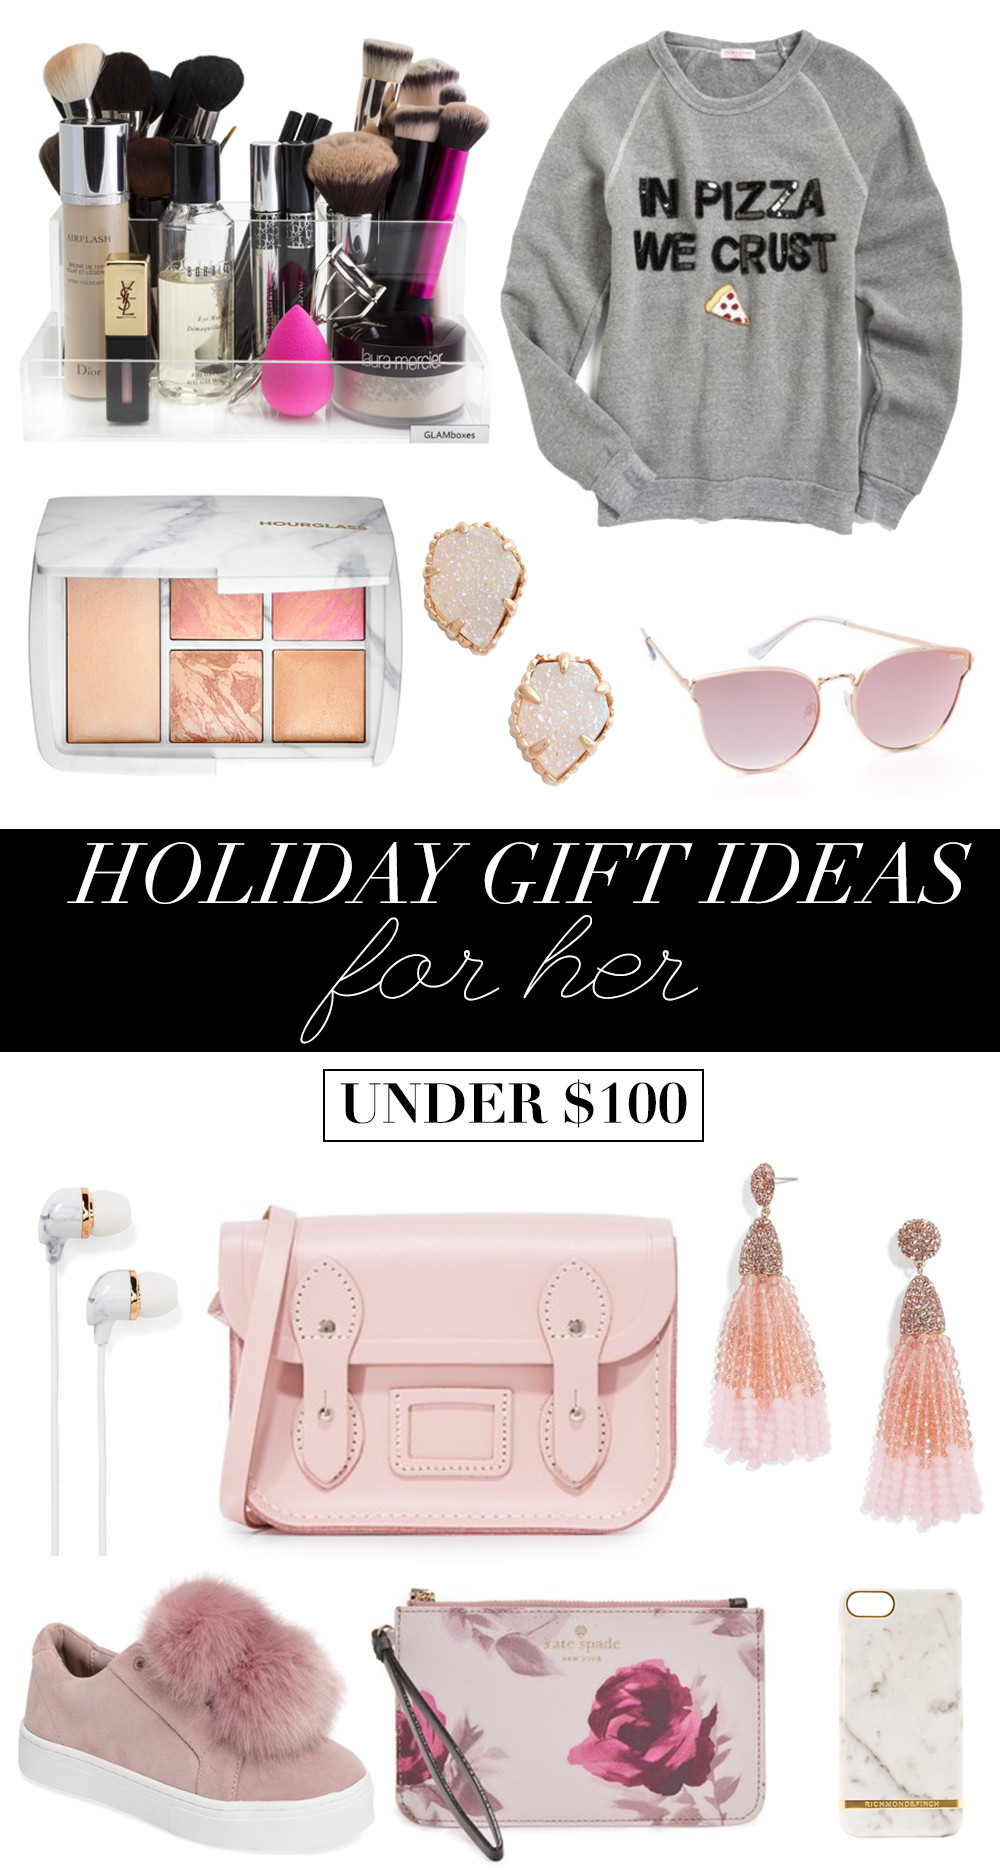 Best ideas about Holiday Gift Ideas For Her . Save or Pin Holiday Gift Ideas For Her Under $100 Money Can Buy Now.